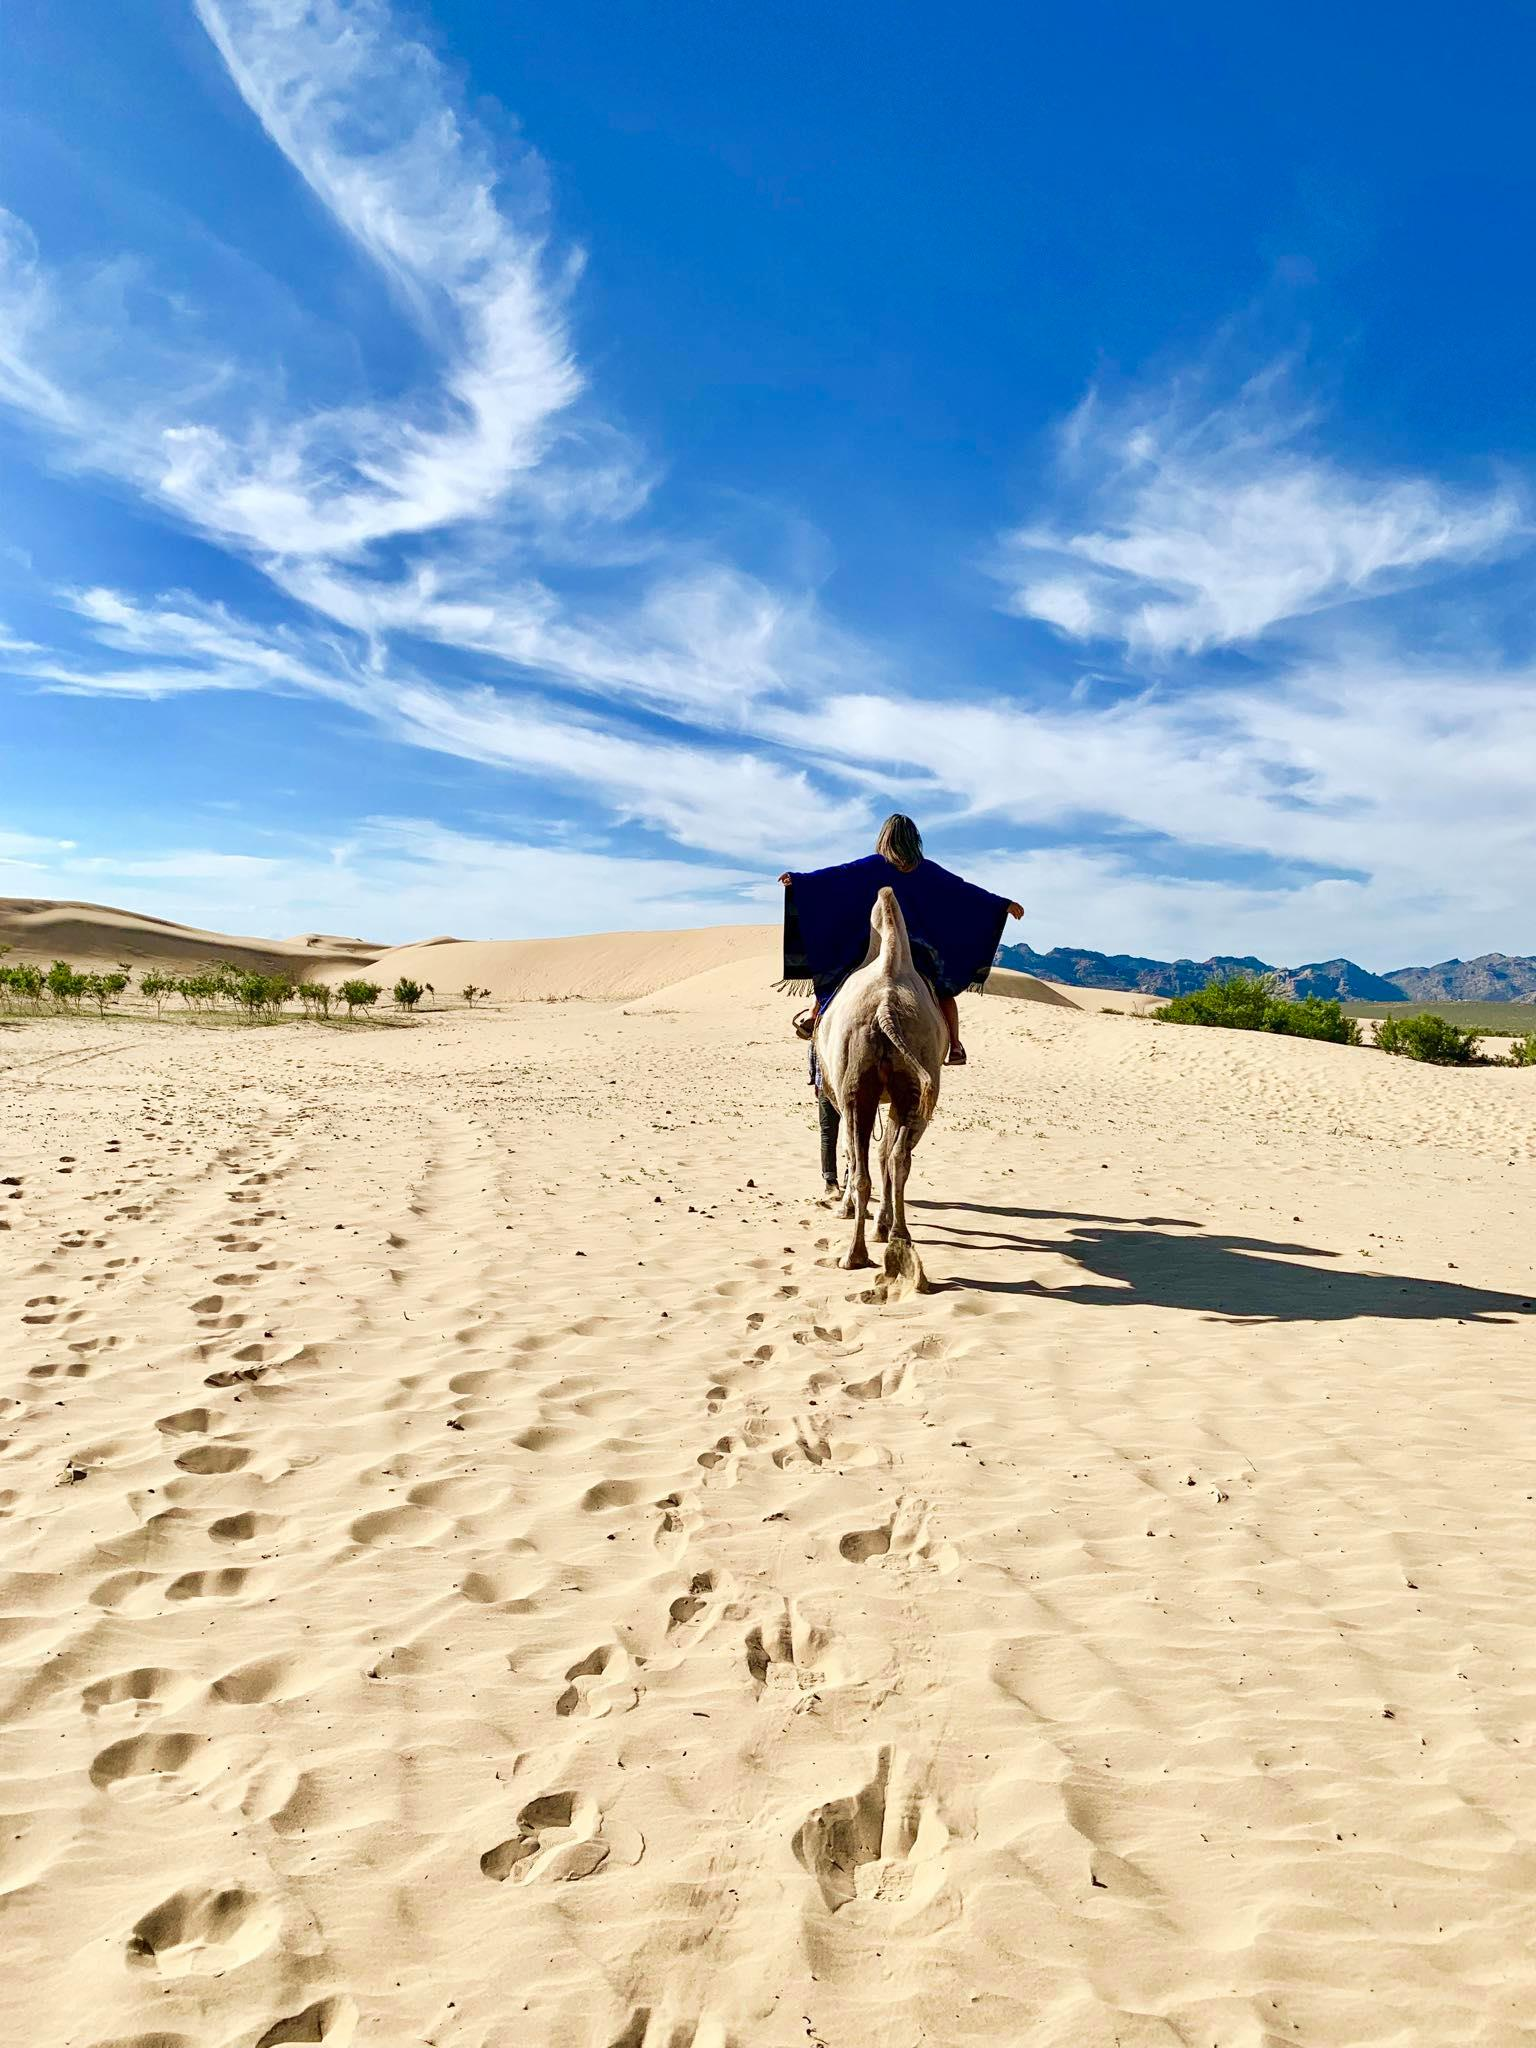 UK Passport Holder Visa Guide Tips on How a British Citizen Can Get a Tourist Visa to Mongolia1